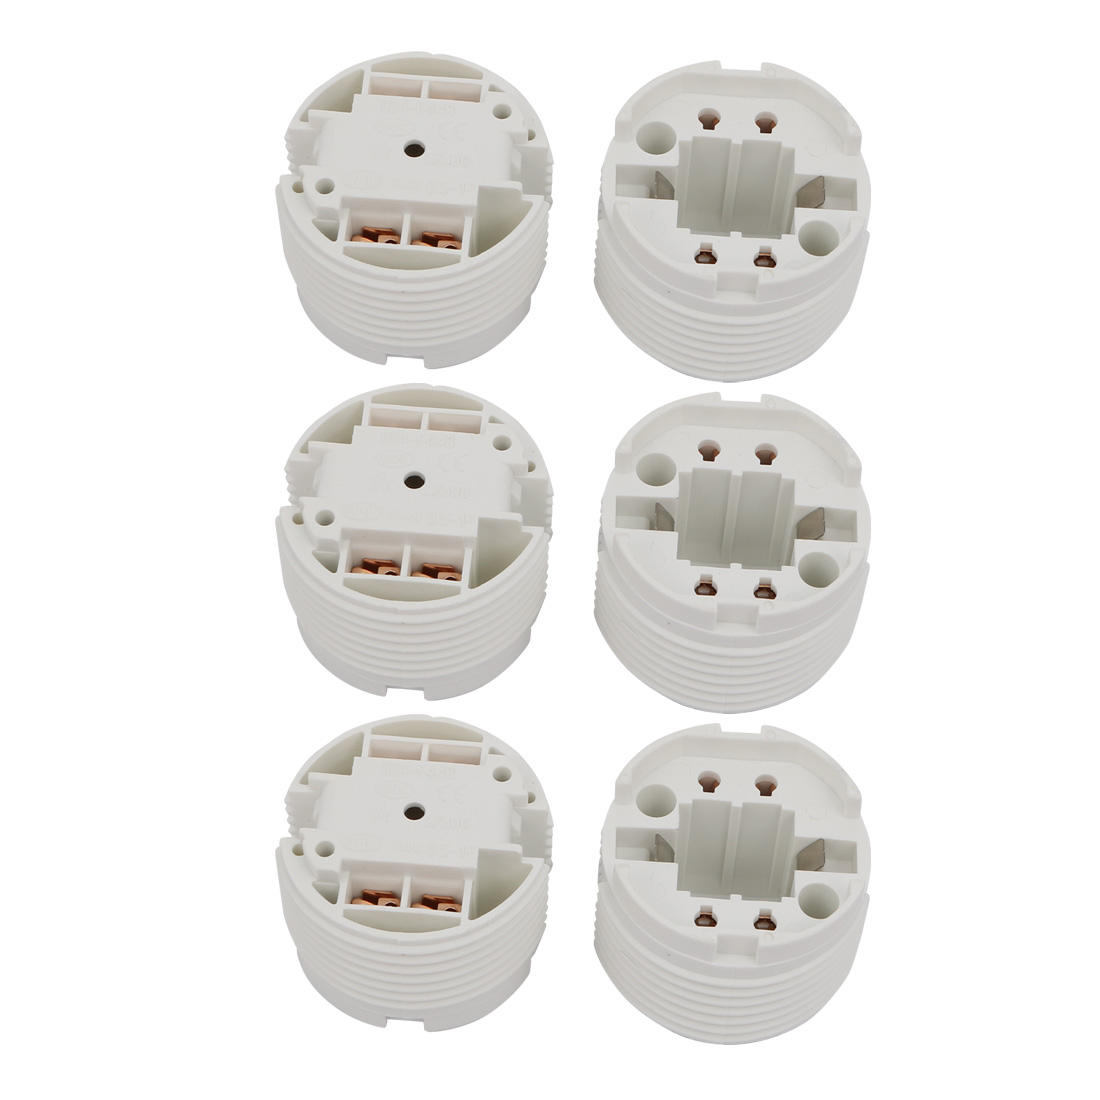 6 Pcs F448Q AC 500V 2A G24 Base H Light Socket Fluorescent Tube Lamp Holder